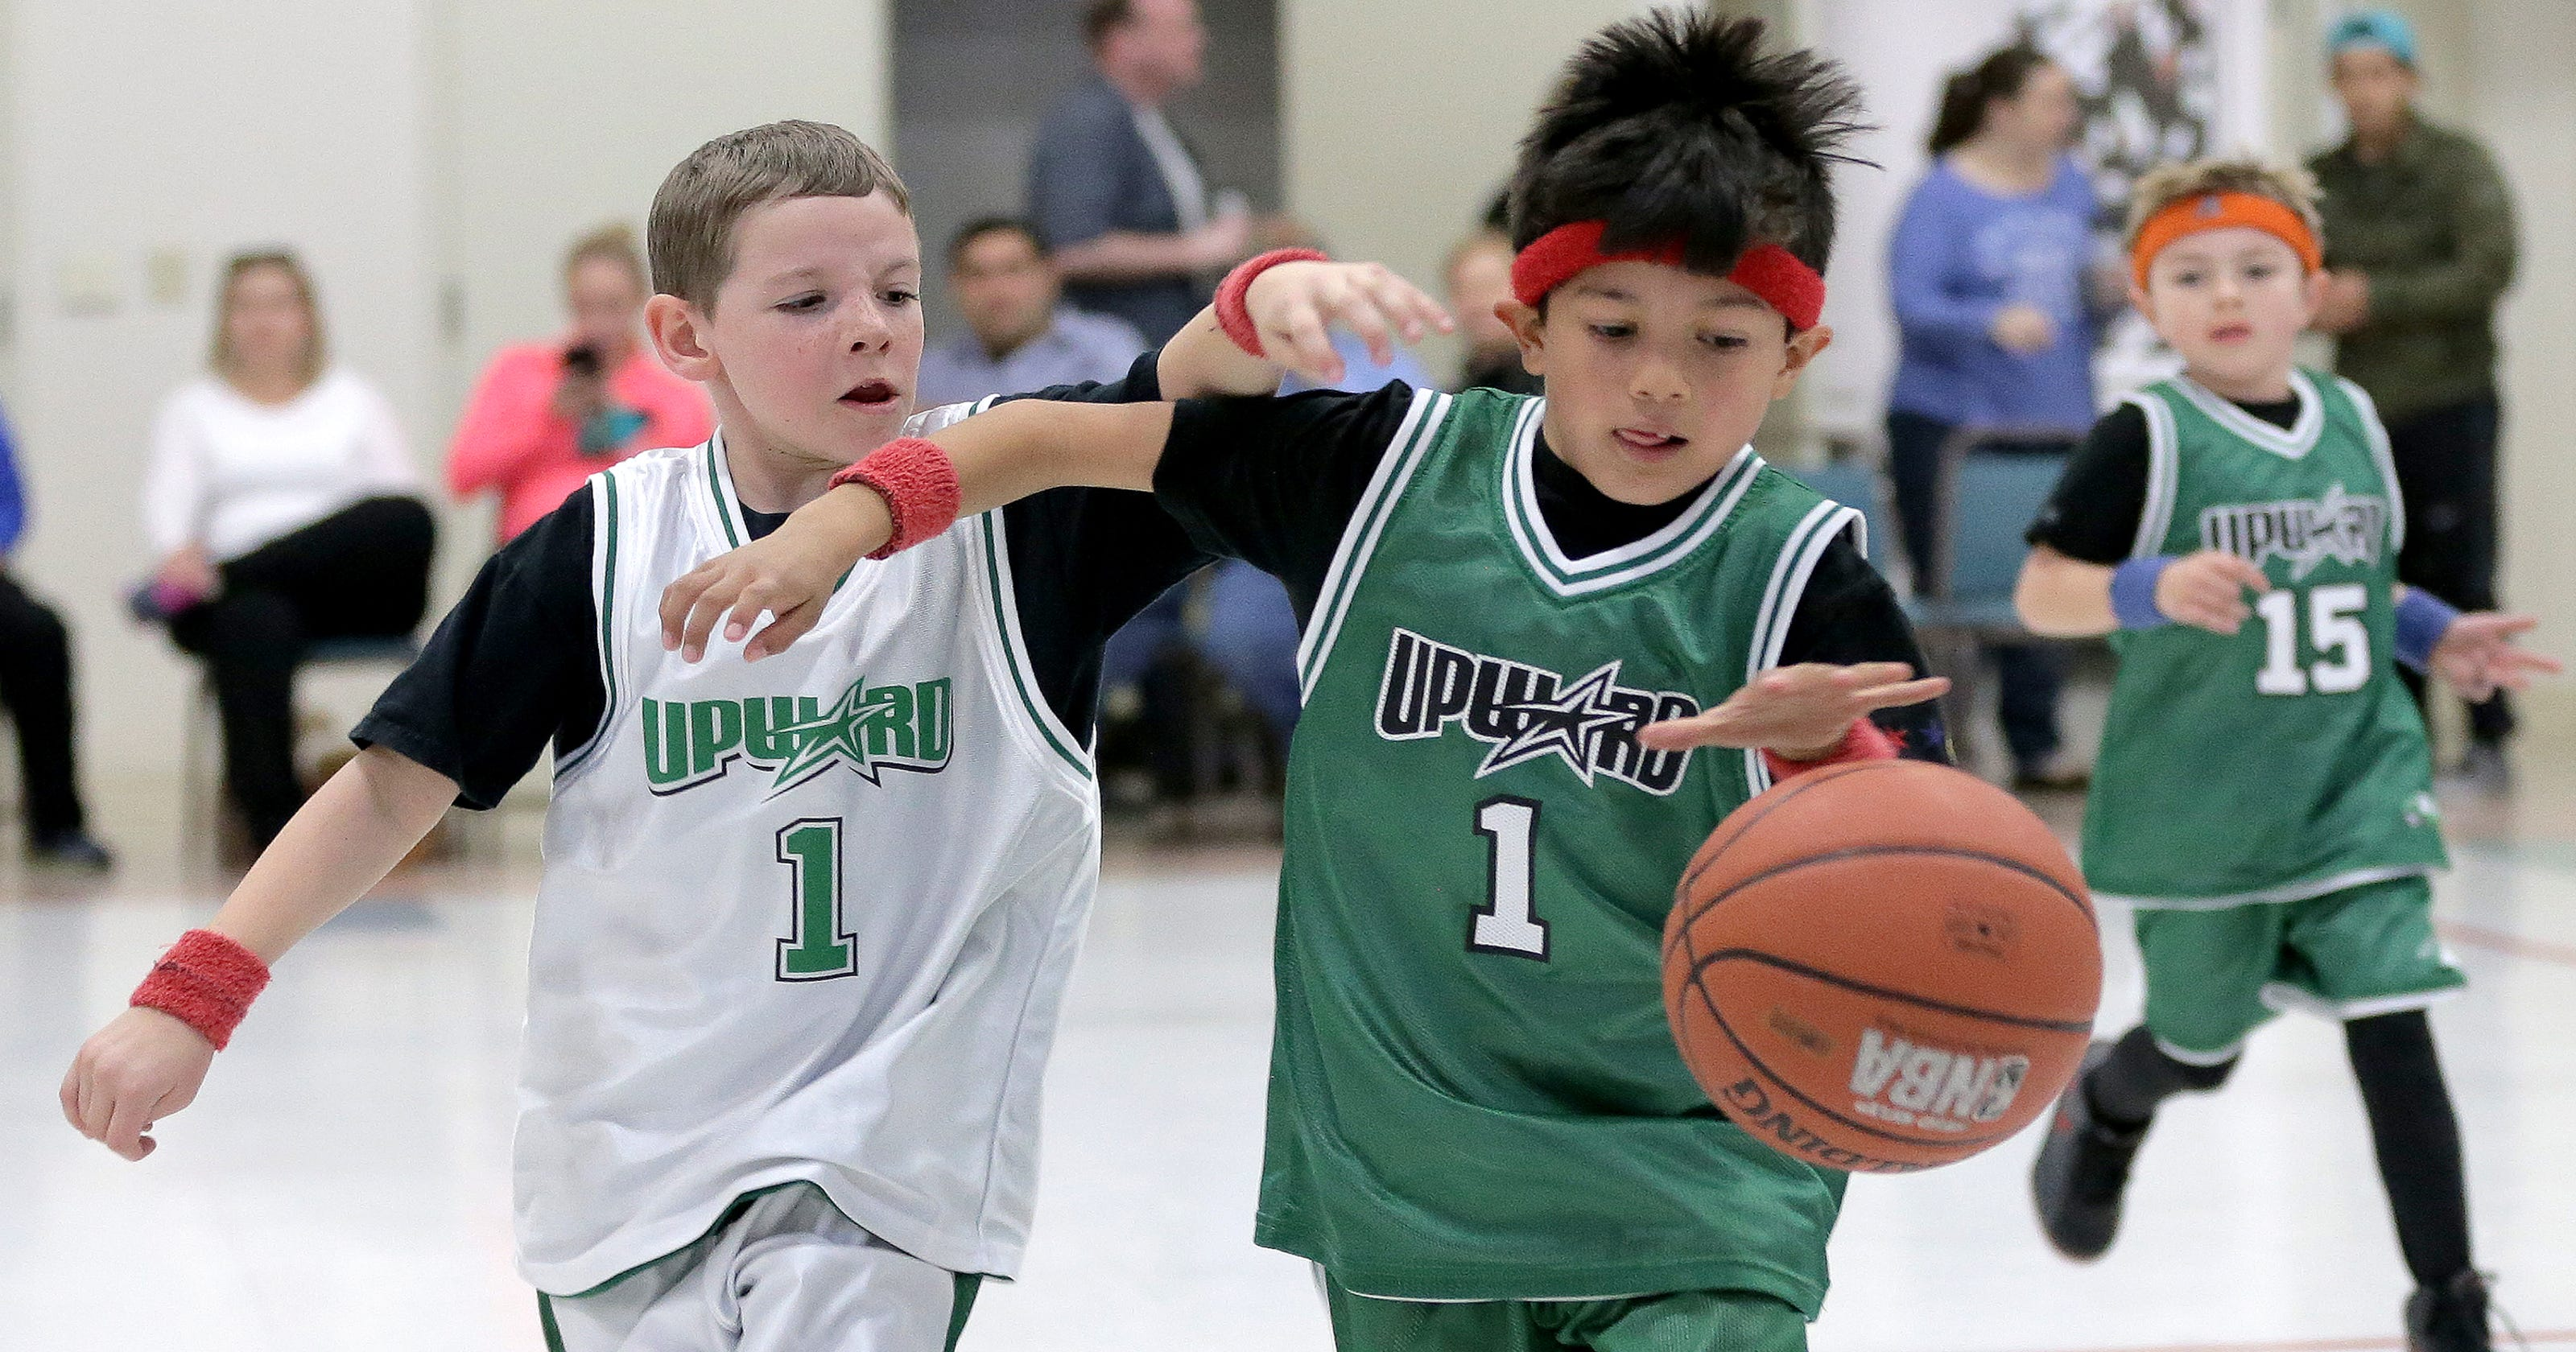 God and hoops: Upward Sports Program good for the soul